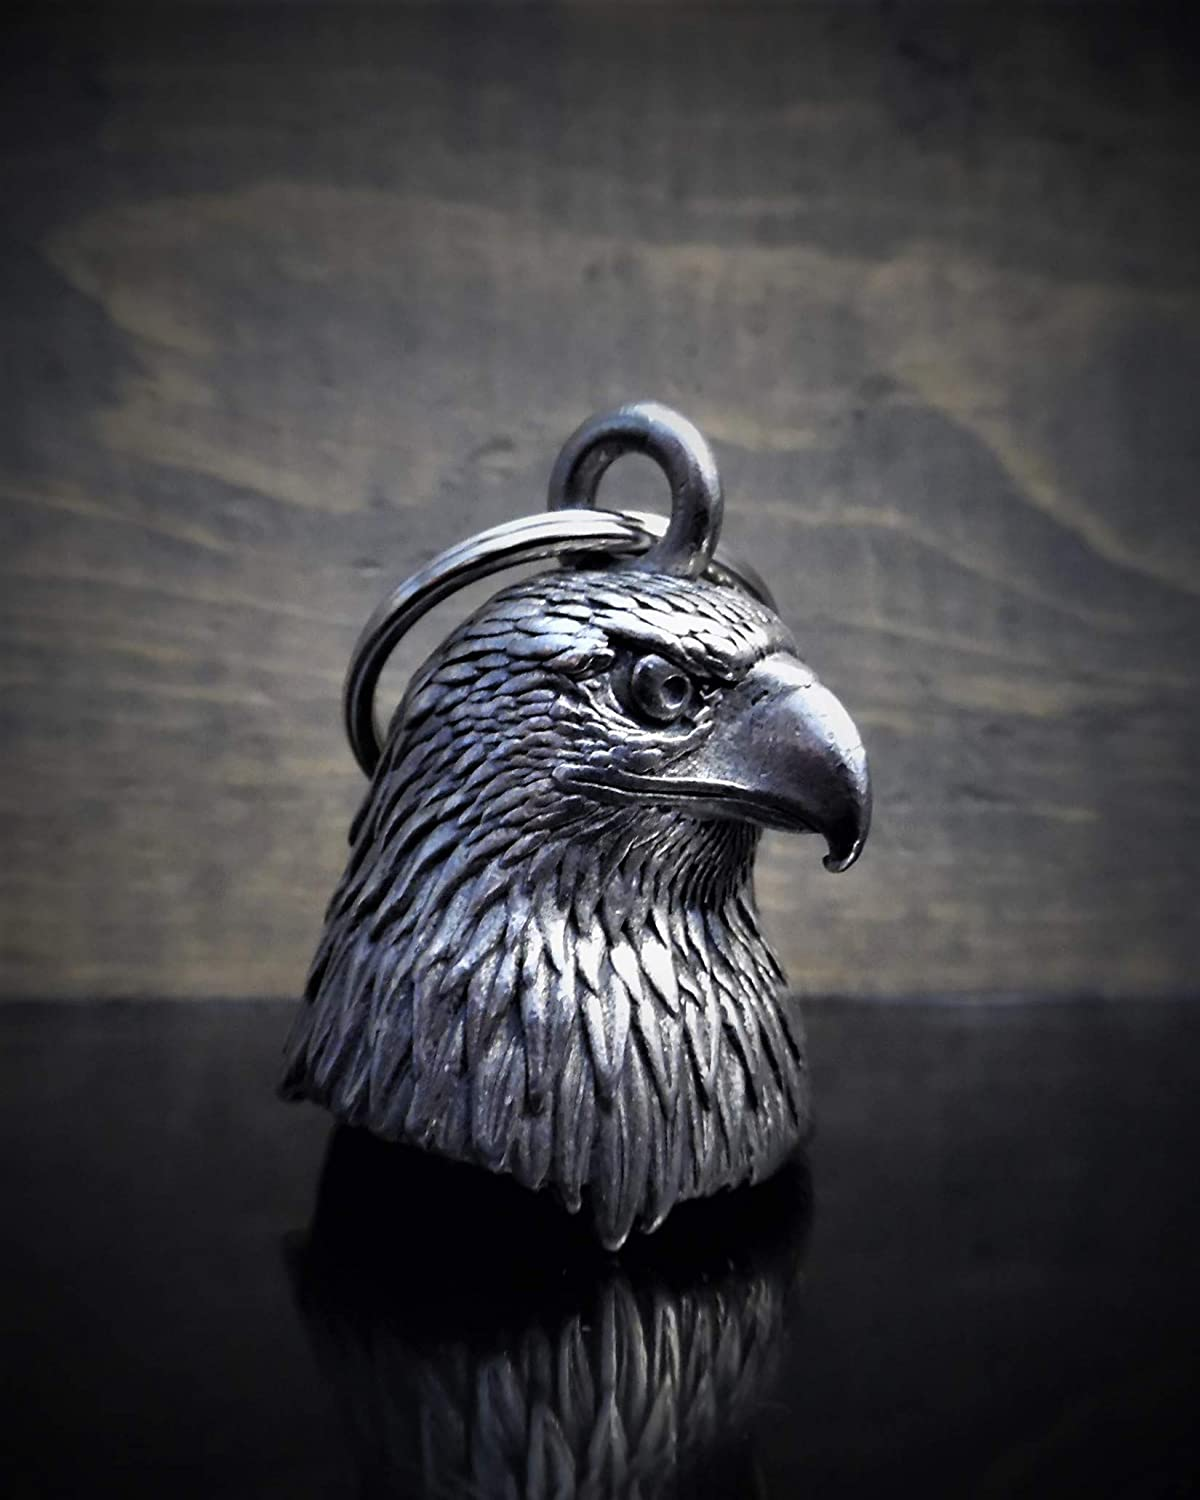 Eagle Head Motorcycle Biker Bell Accessory or Key Chain for Luck